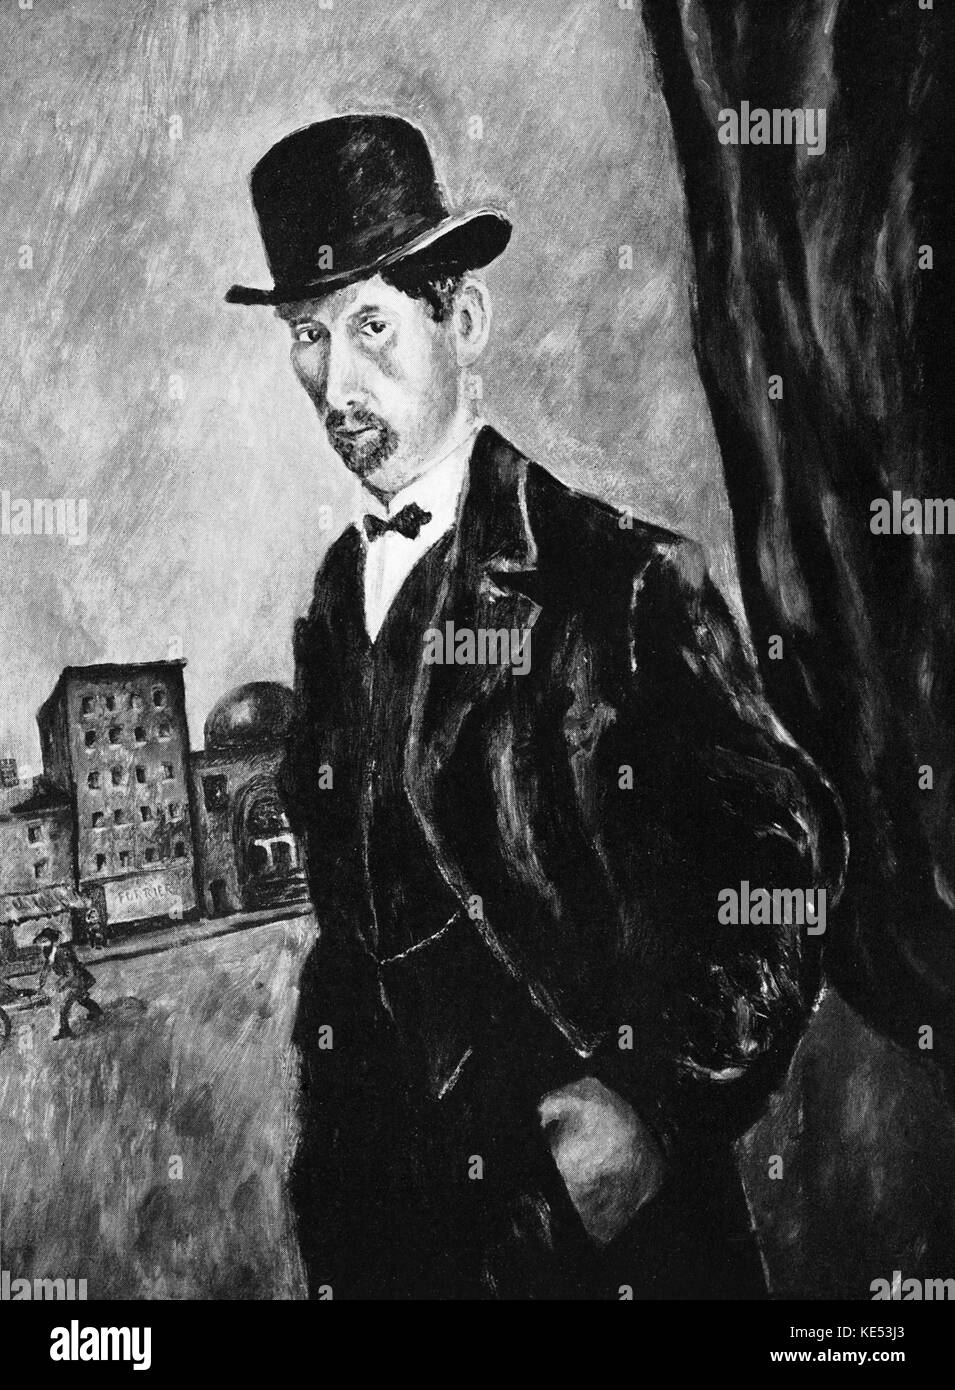 George Gershwin 's painting of his Grandfather 1933.   American composer & pianist, 26th September 1898 - 11th July Stock Photo